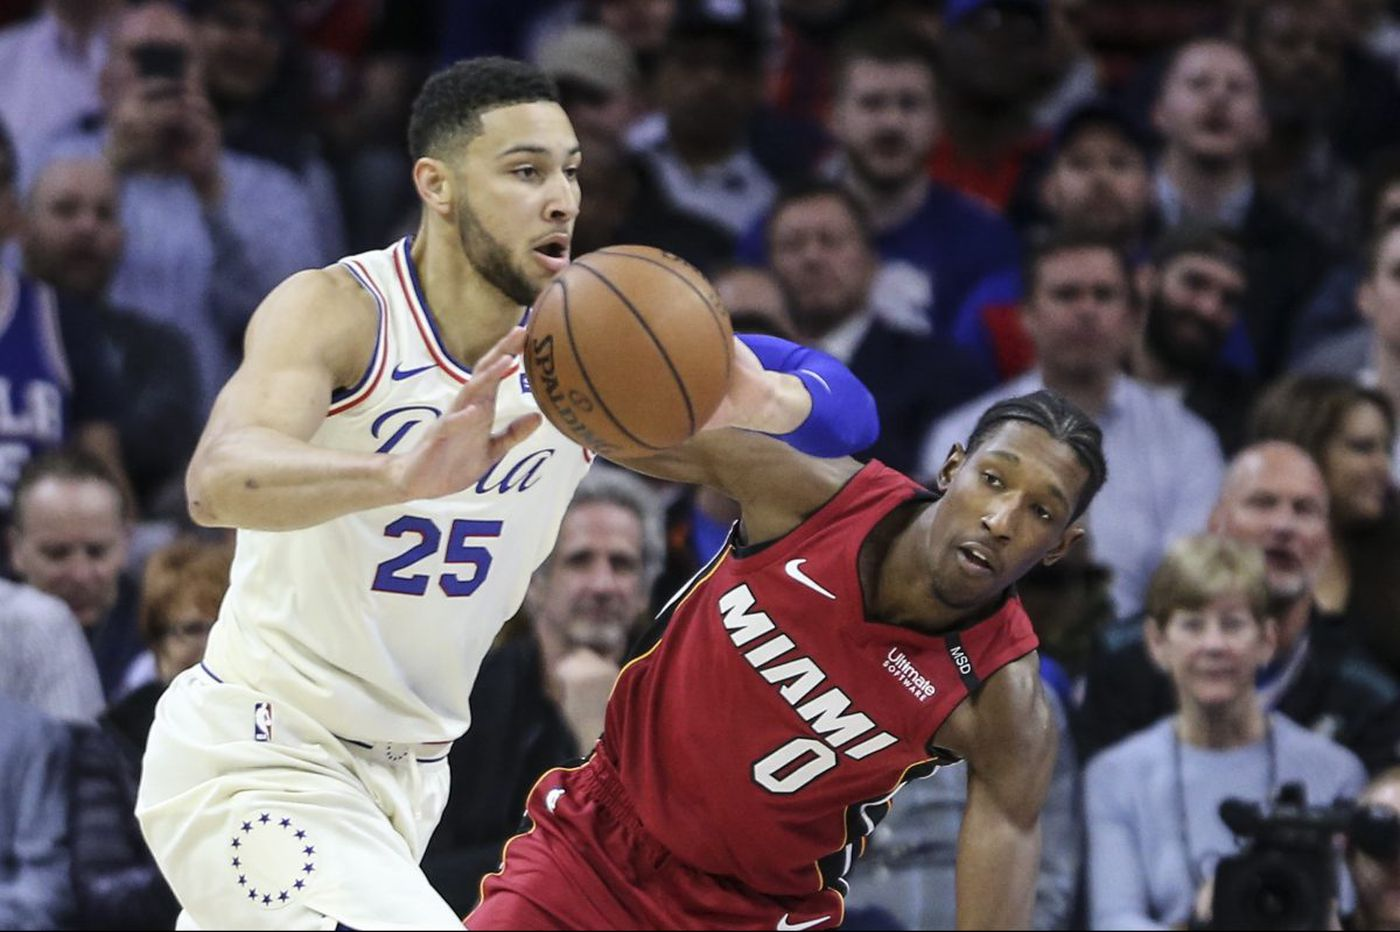 Ben Simmons' performance a silver lining in Sixers' Game 2 loss | David Murphy